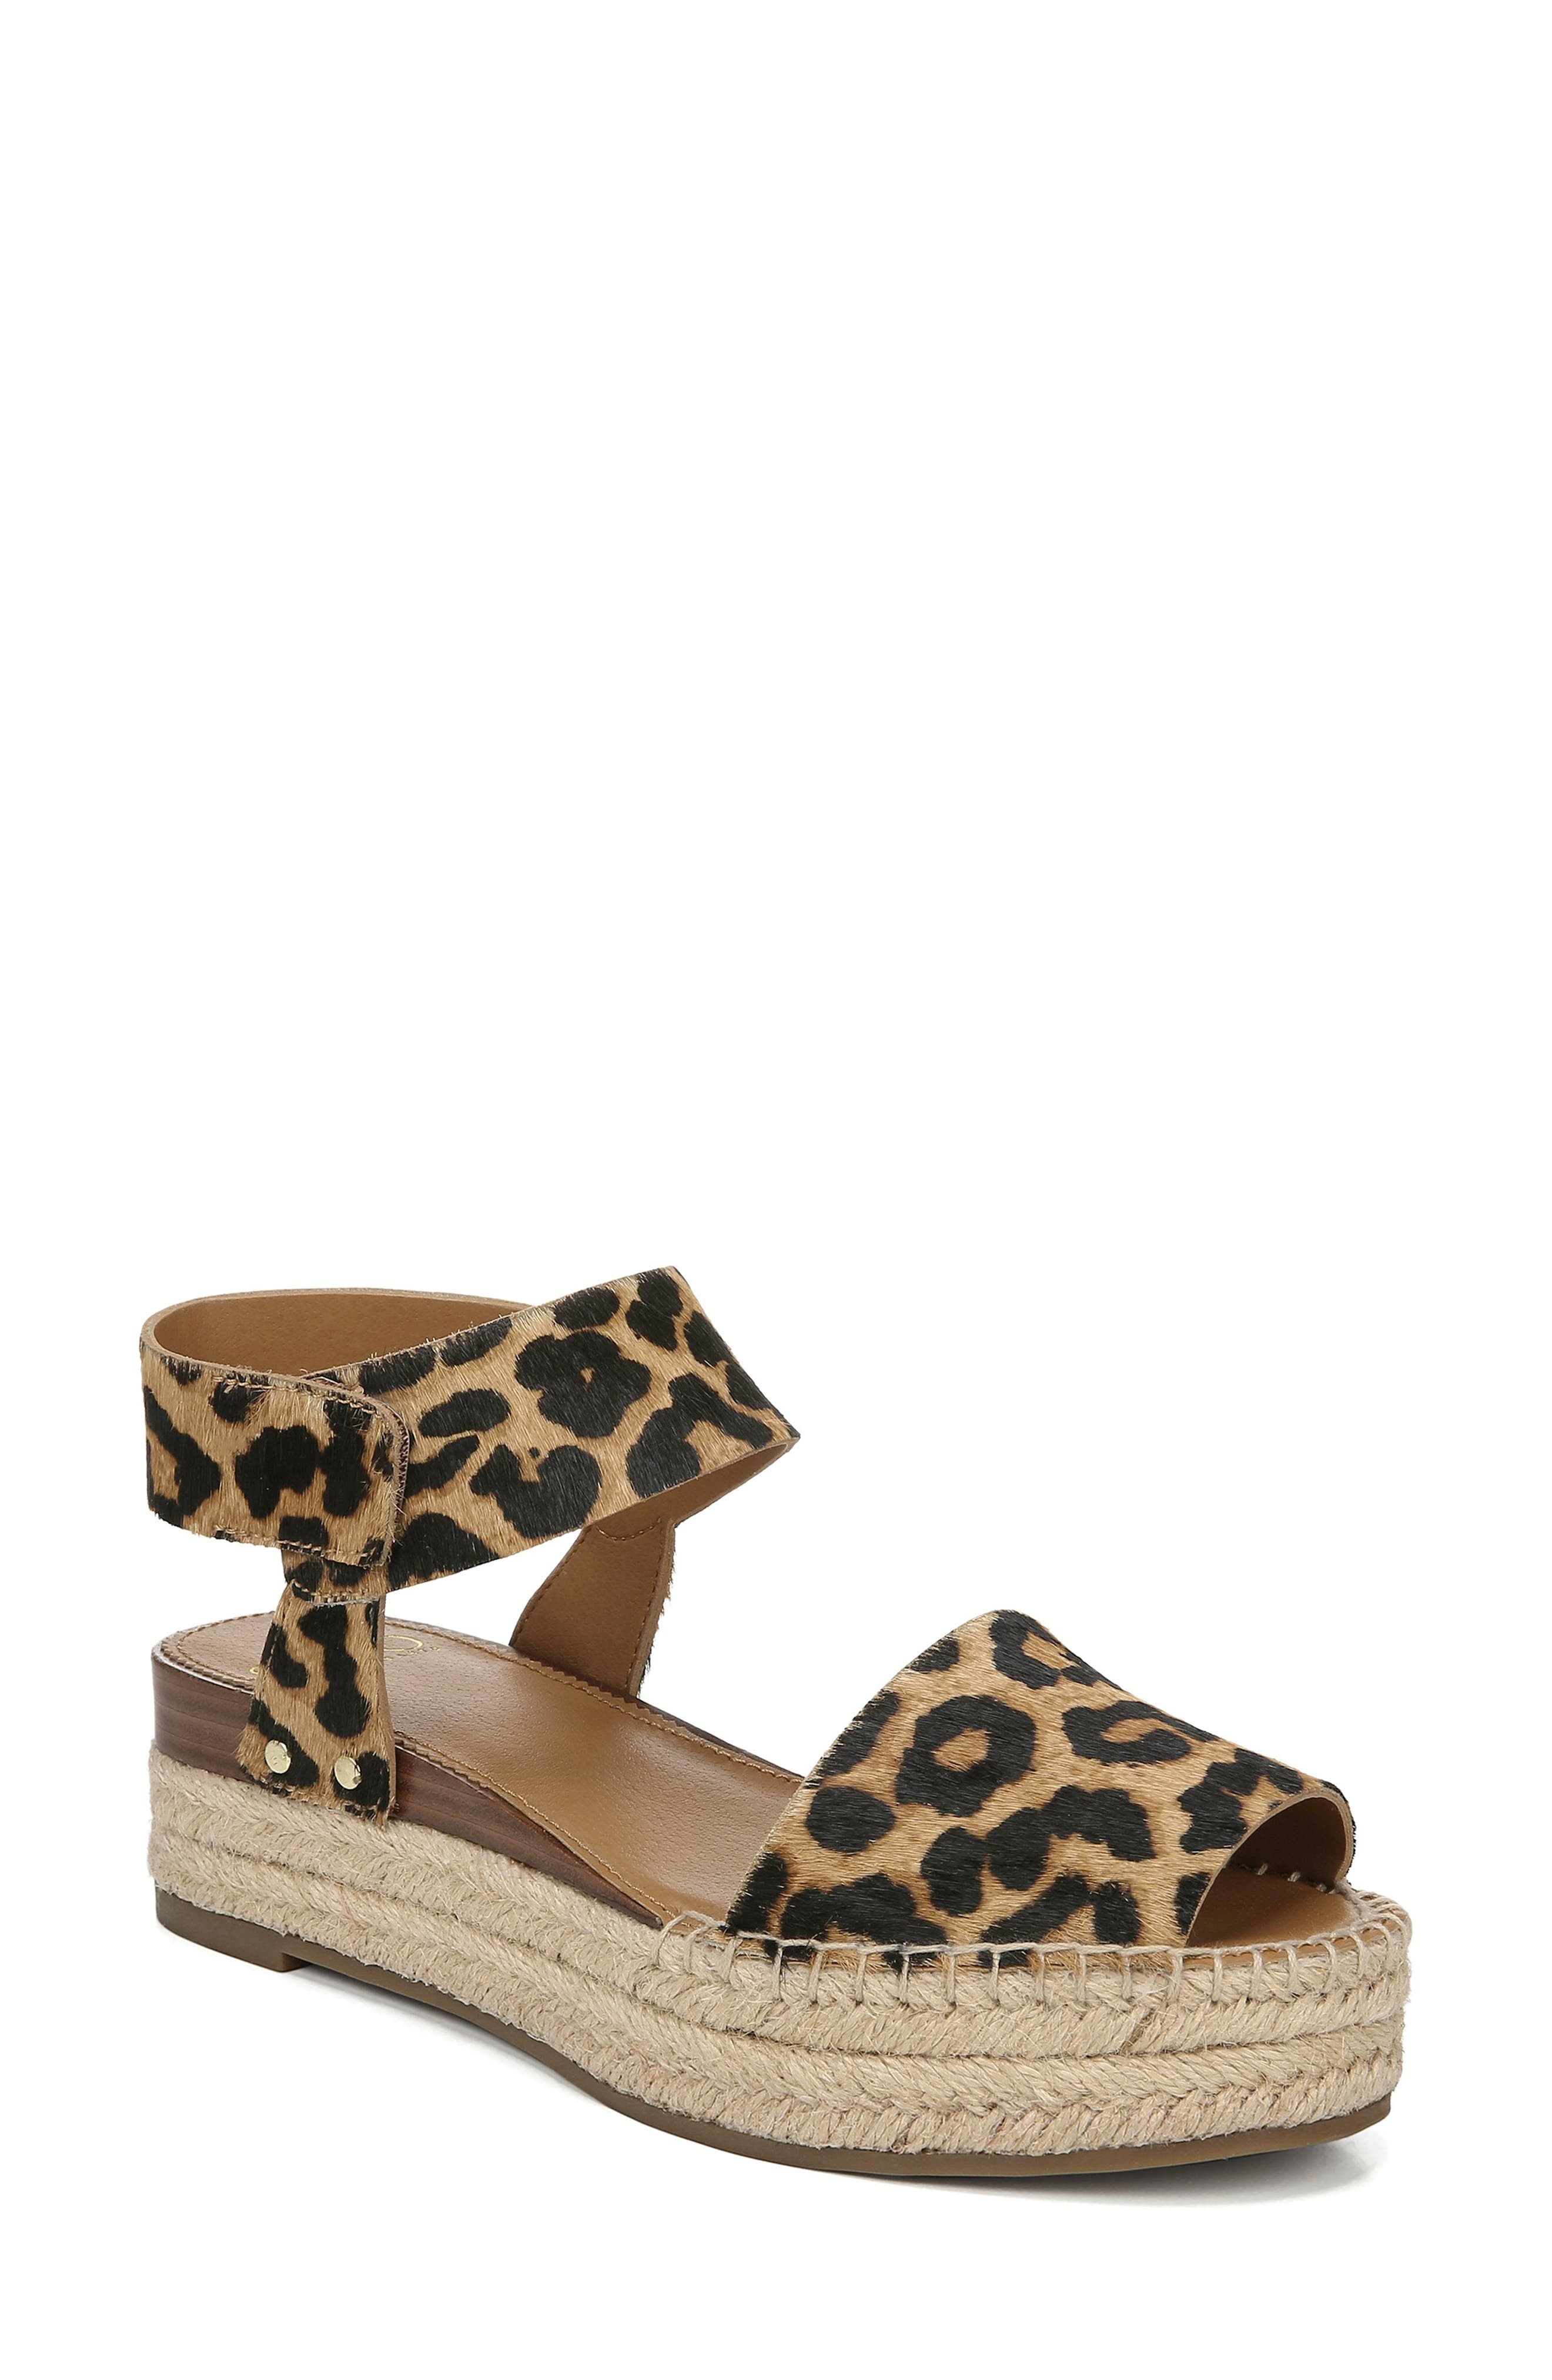 ,                             Oak Genuine Calf Hair Platform Wedge Espadrille,                             Main thumbnail 1, color,                             LEOPARD PRINT CALF HAIR